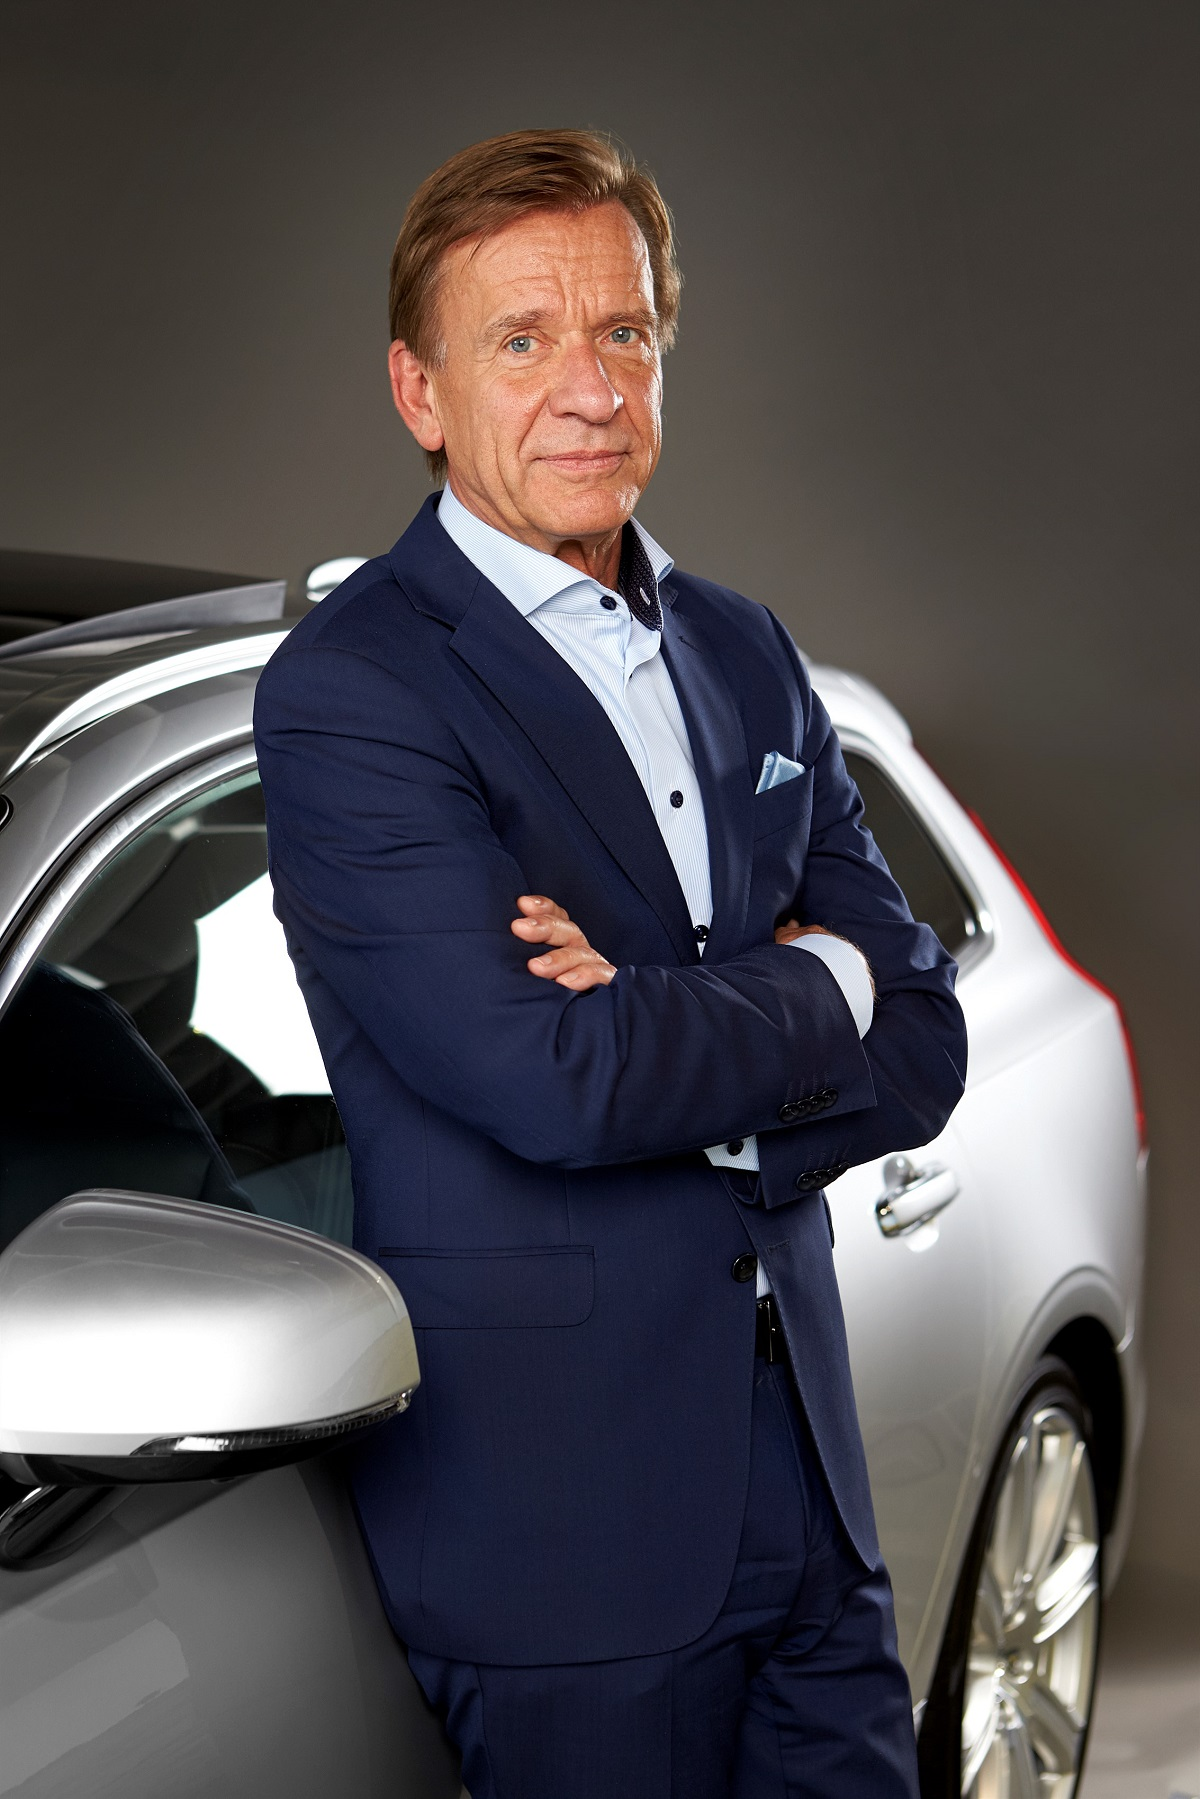 199902_H_kan_Samuelsson_-_President_CEO_Volvo_Car_Group.jpg